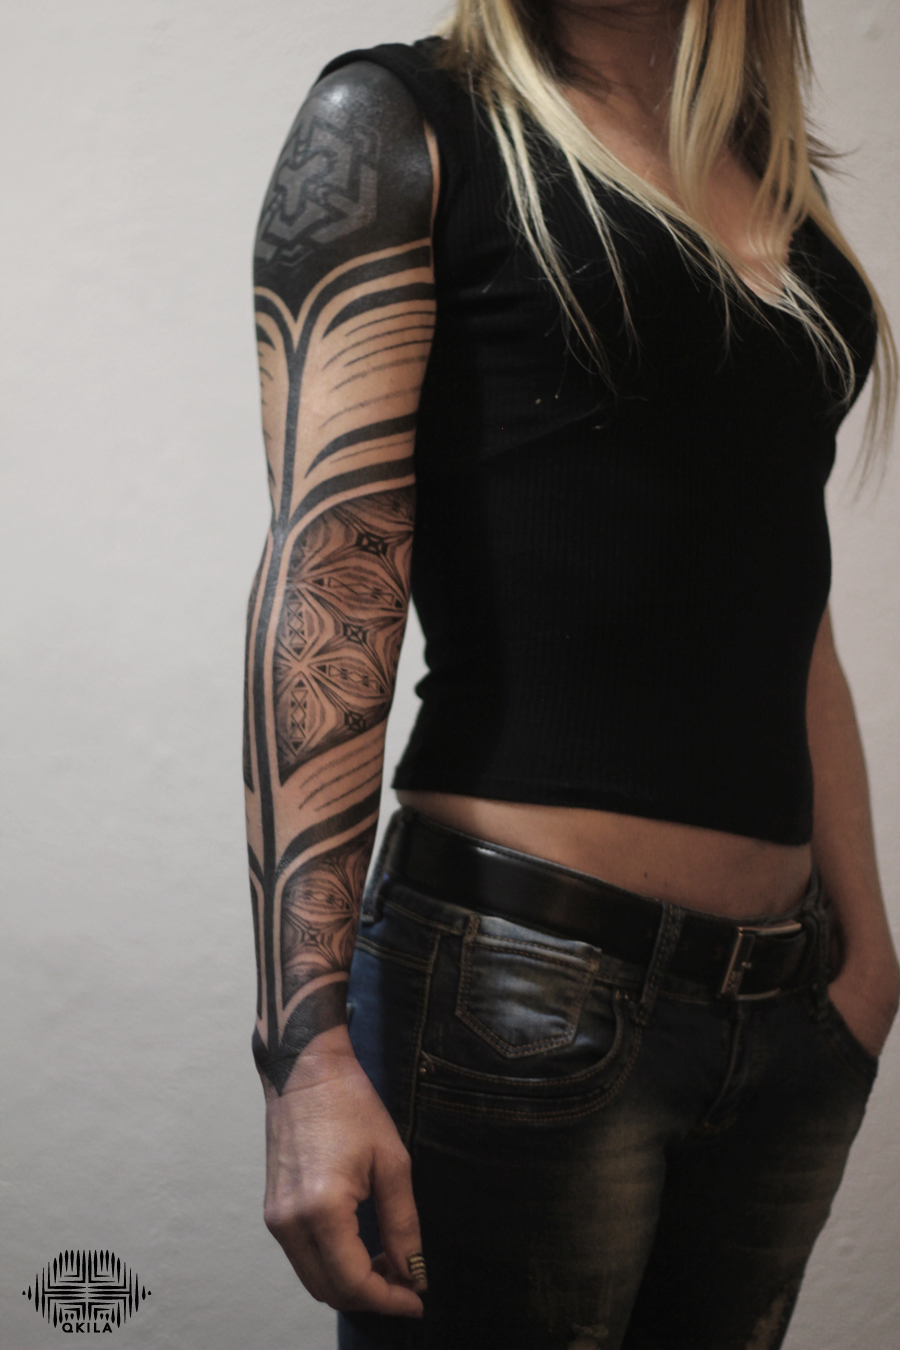 full sleeve tattoo ,nimes,black,patterns tattoo,op art, sleeves tattoo, dotwork tattoo, qkila,geometric tattoo, ethnique tattoo, les tatoués anonymes, nimes